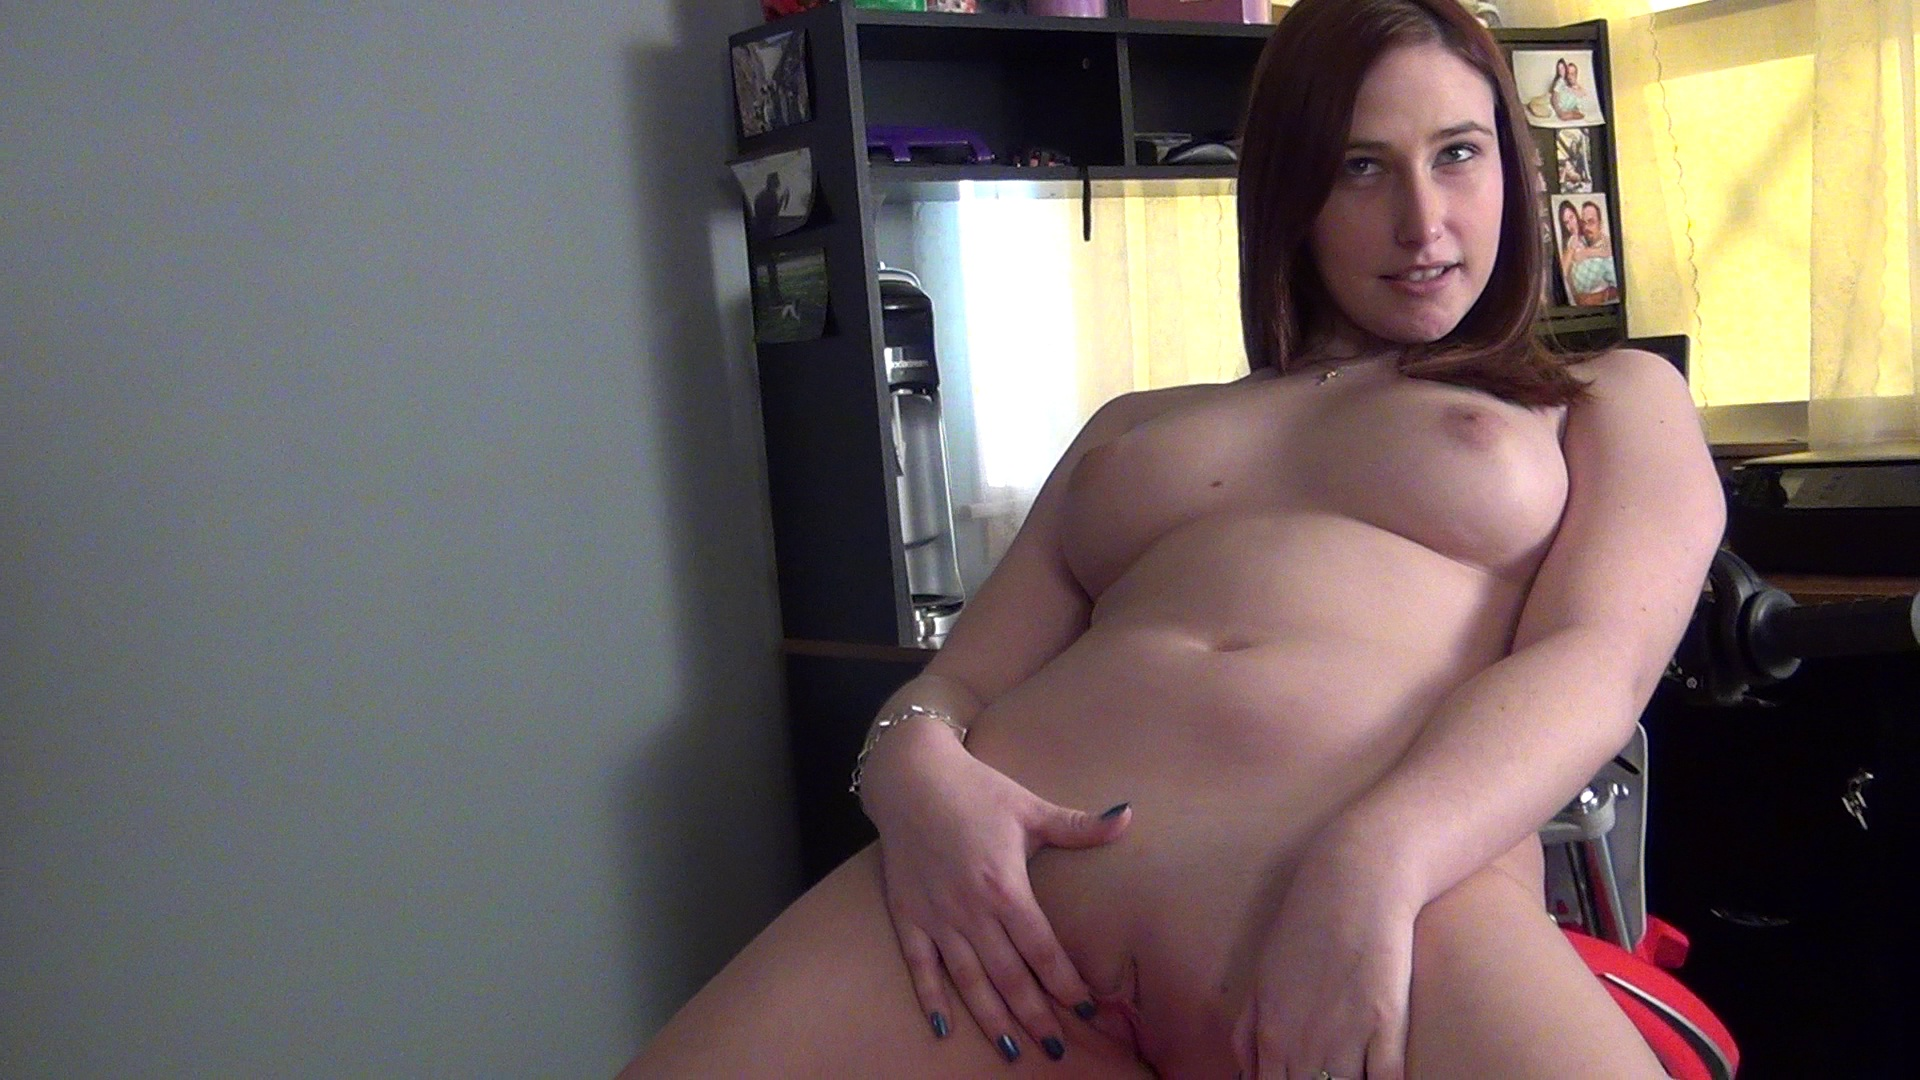 Hot marriage girl fuck pic